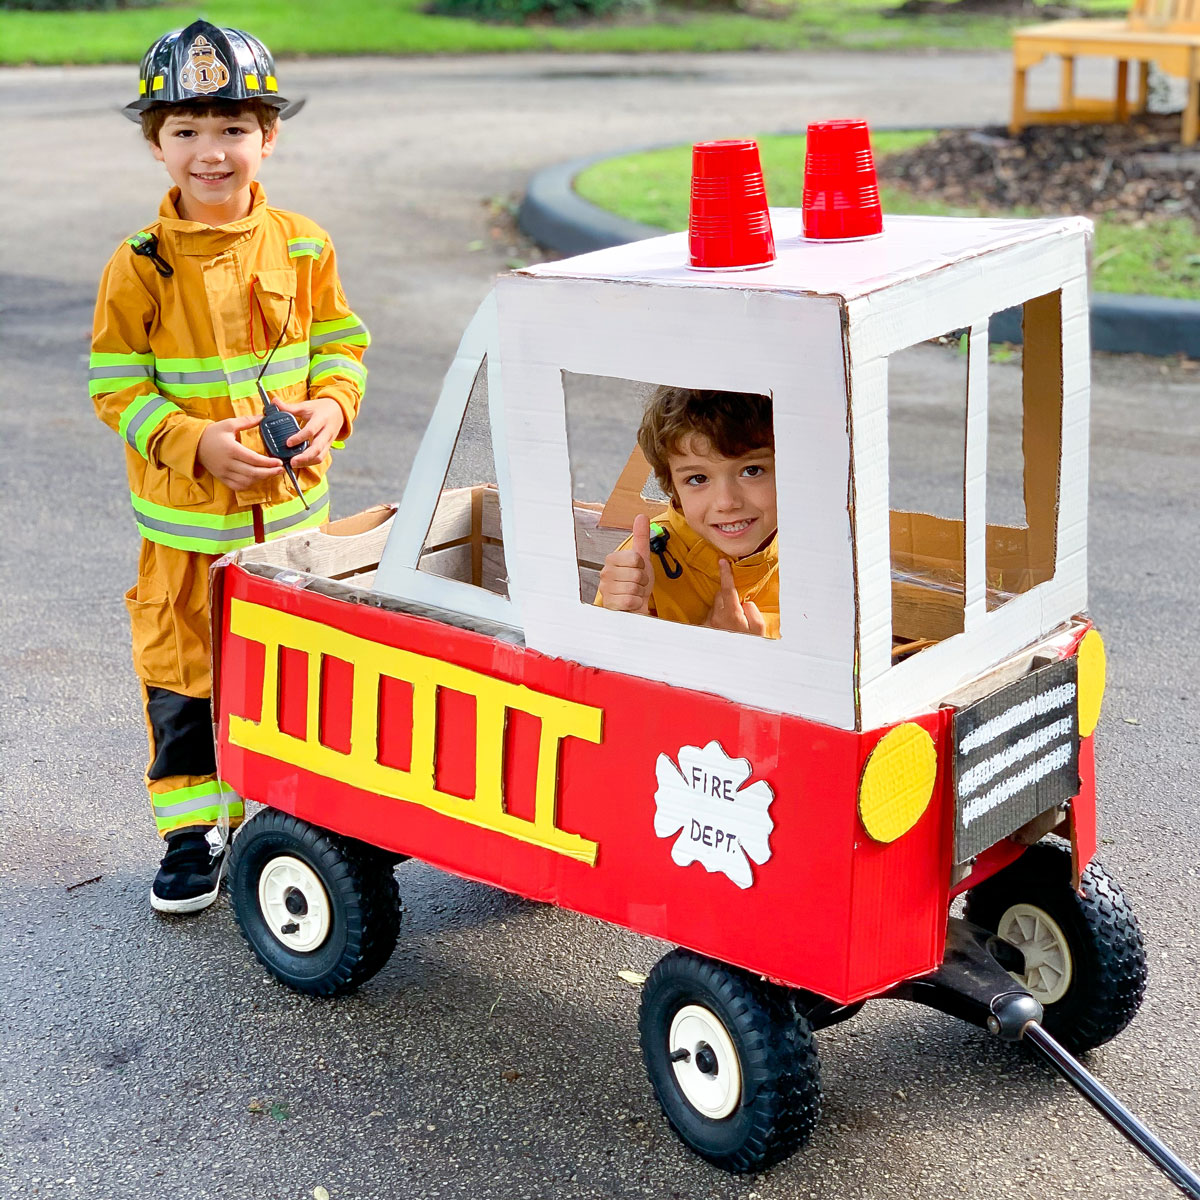 DIY Firefighter Costume – How to Make a Fire Truck